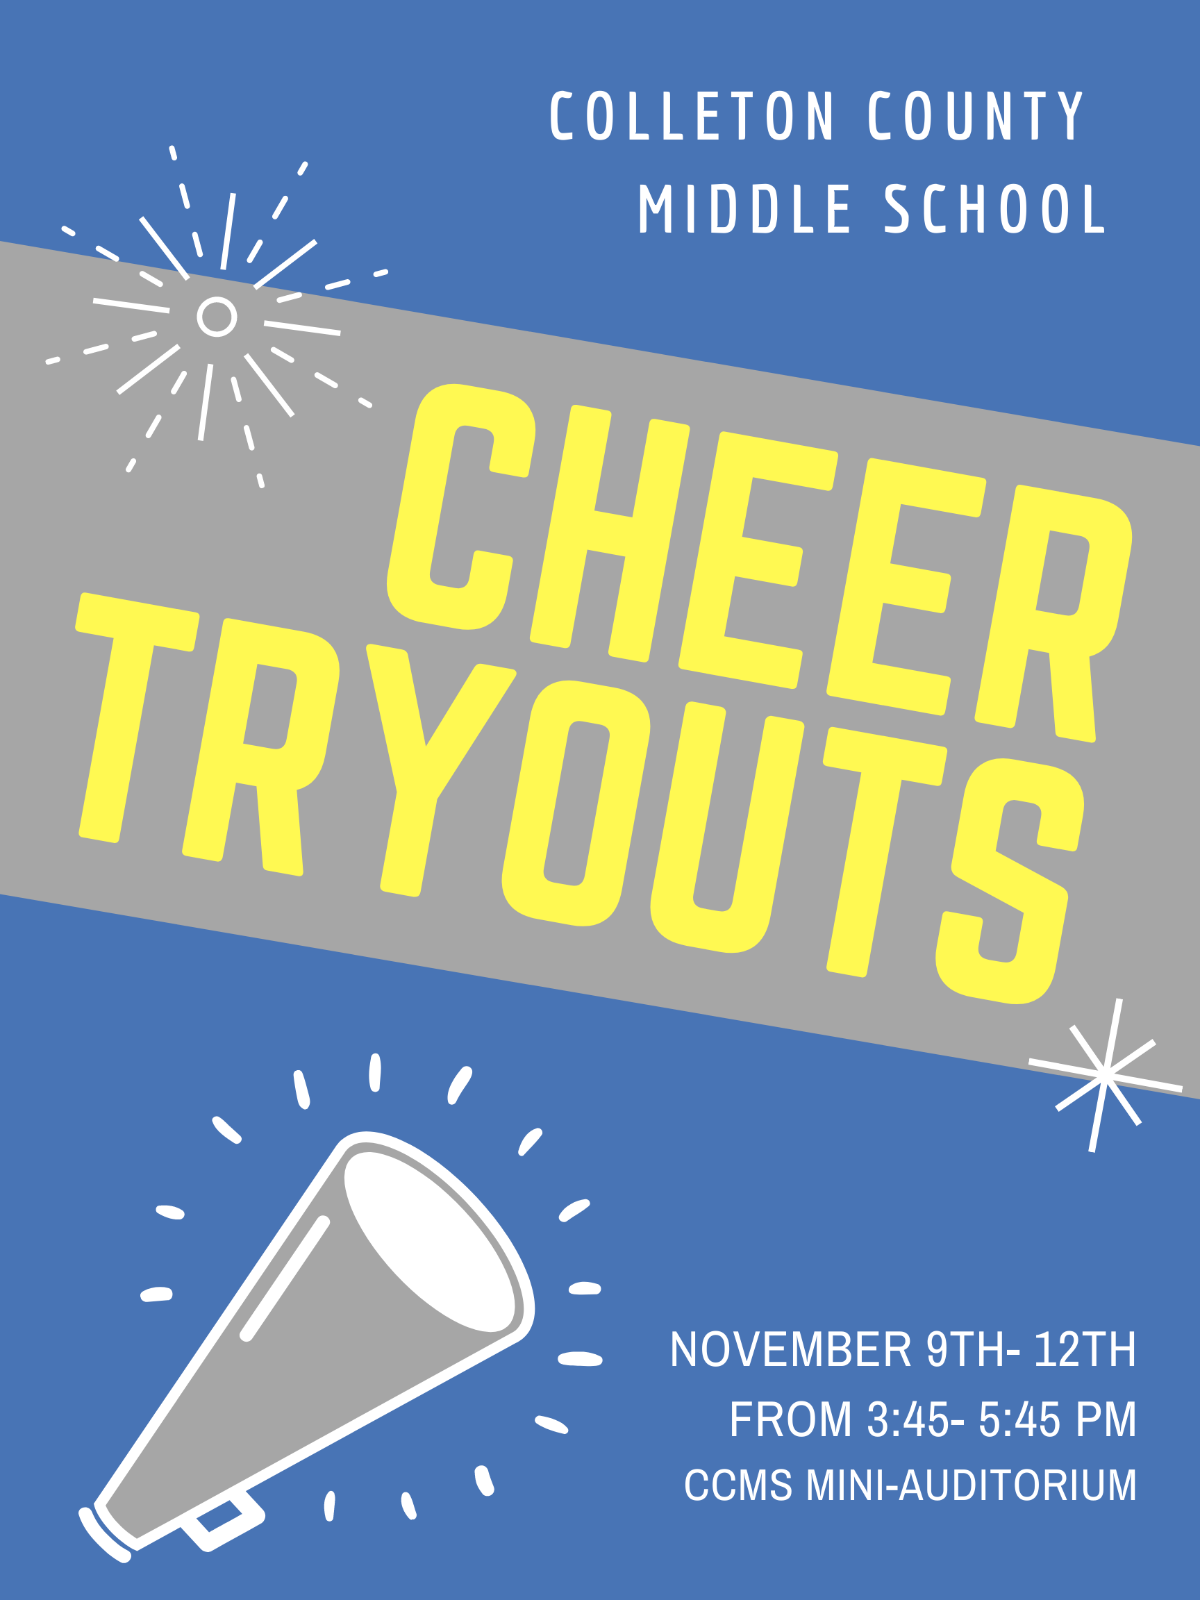 CCMS Cheerleading Tryouts: November 9th-12th